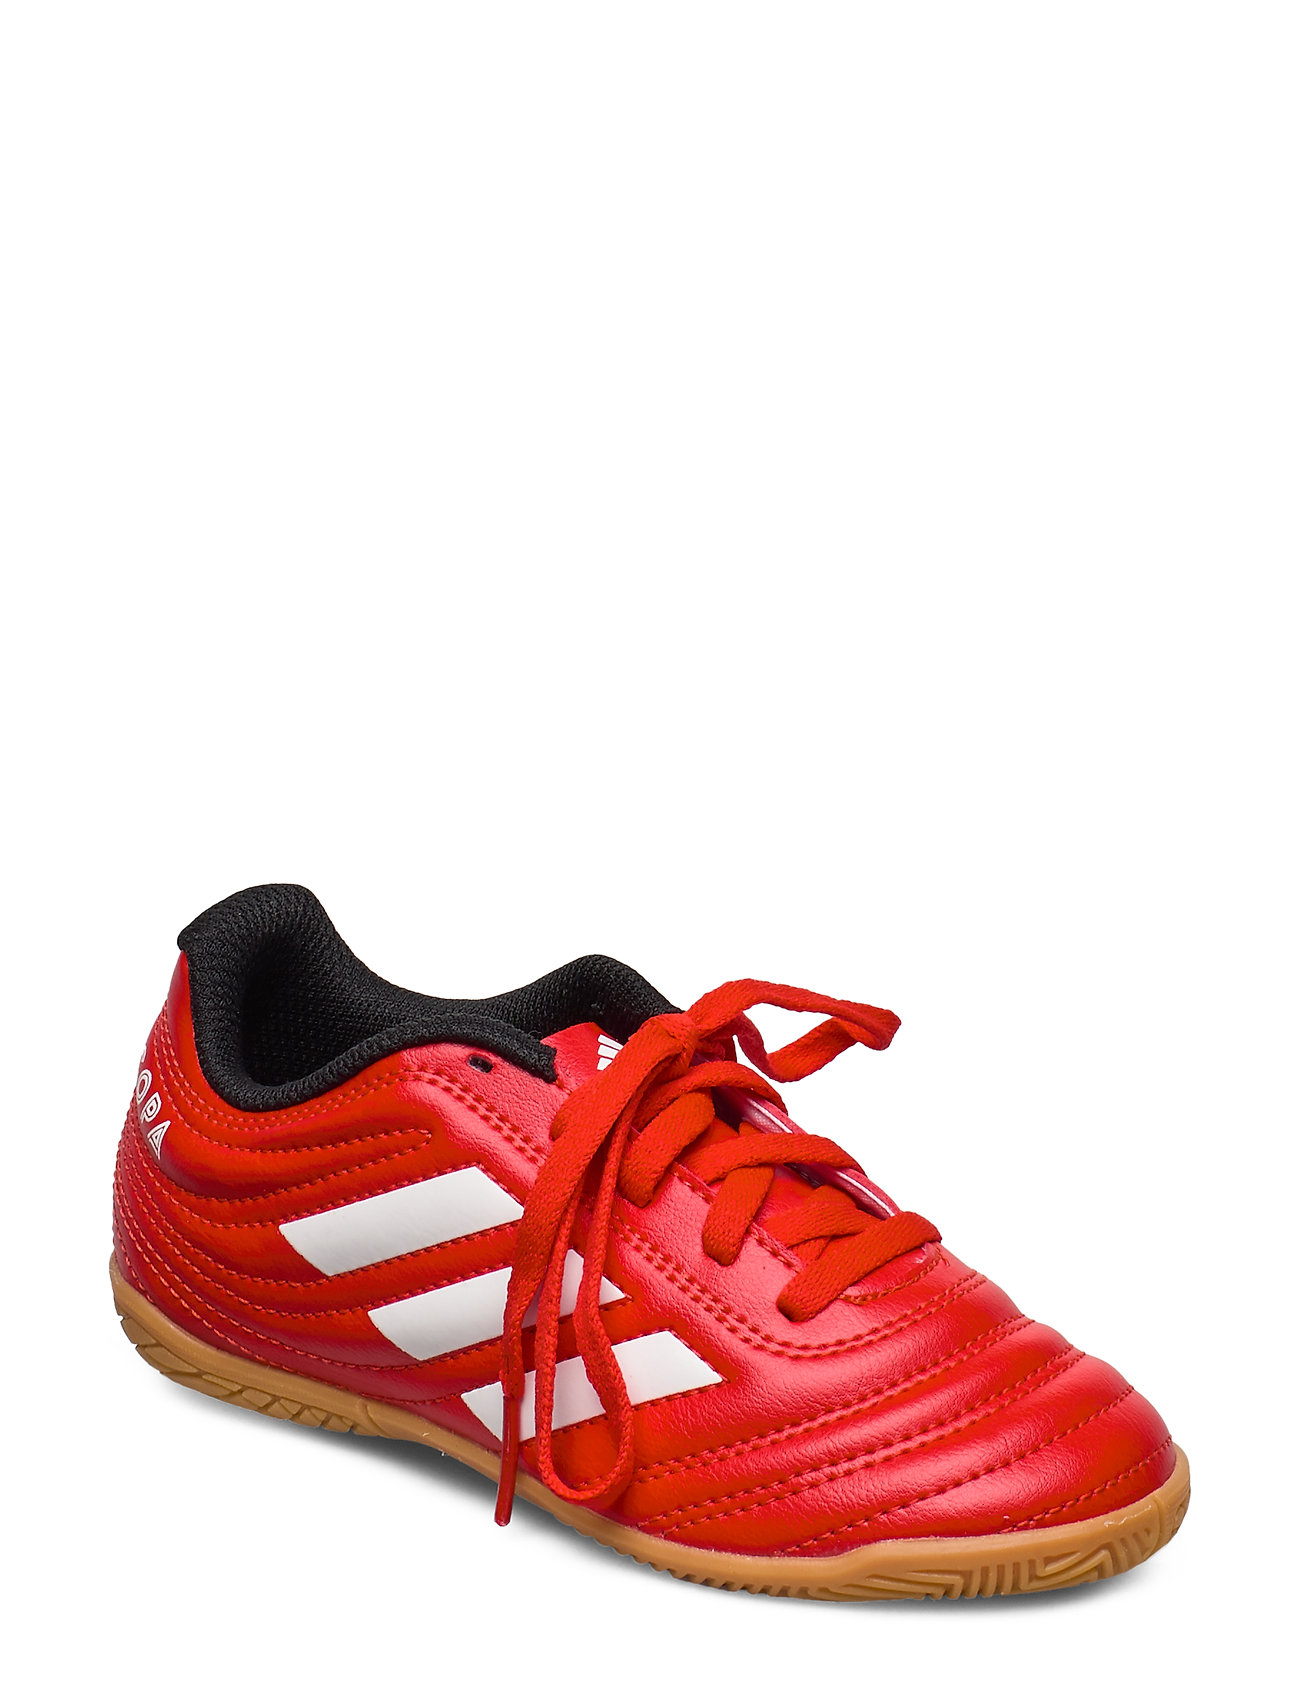 adidas Performance COPA 20.4 IN J - ACTRED/FTWWHT/CBLACK